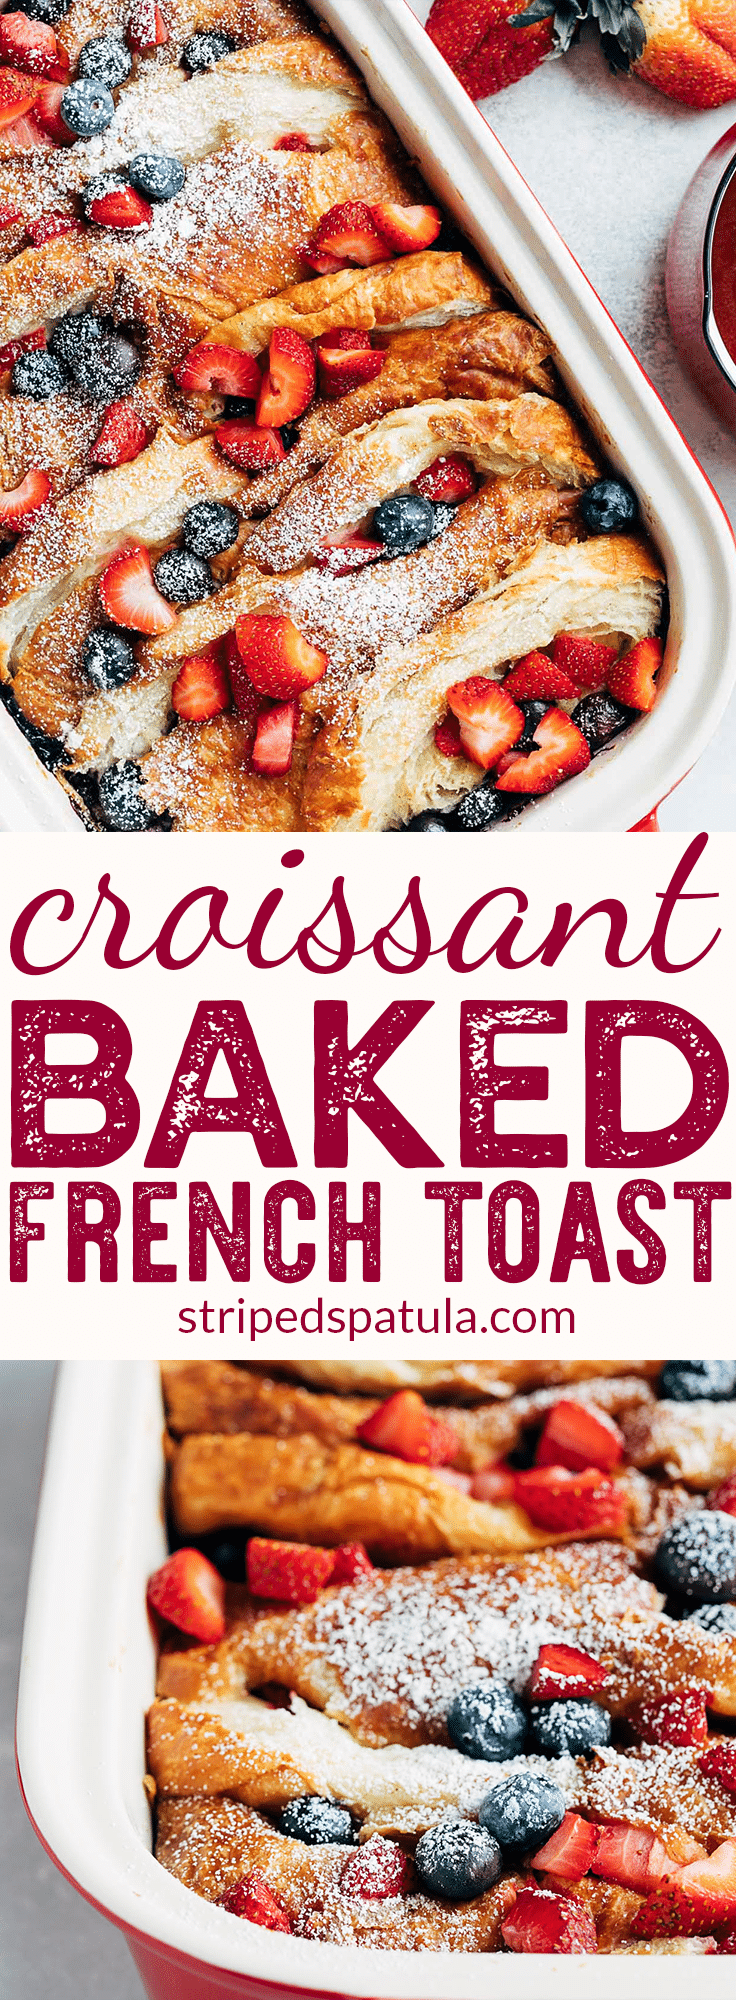 #sponsored Baked French Toast Casserole | French Toast Recipe | French Toast Easy | French Toast Bake | Croissant French Toast Casserole | Berry Recipes | #frenchtoast #breakfastrecipe #brunchgoals #brunching #brunch #berries #croissant #poweredbyberries #stripedspatula